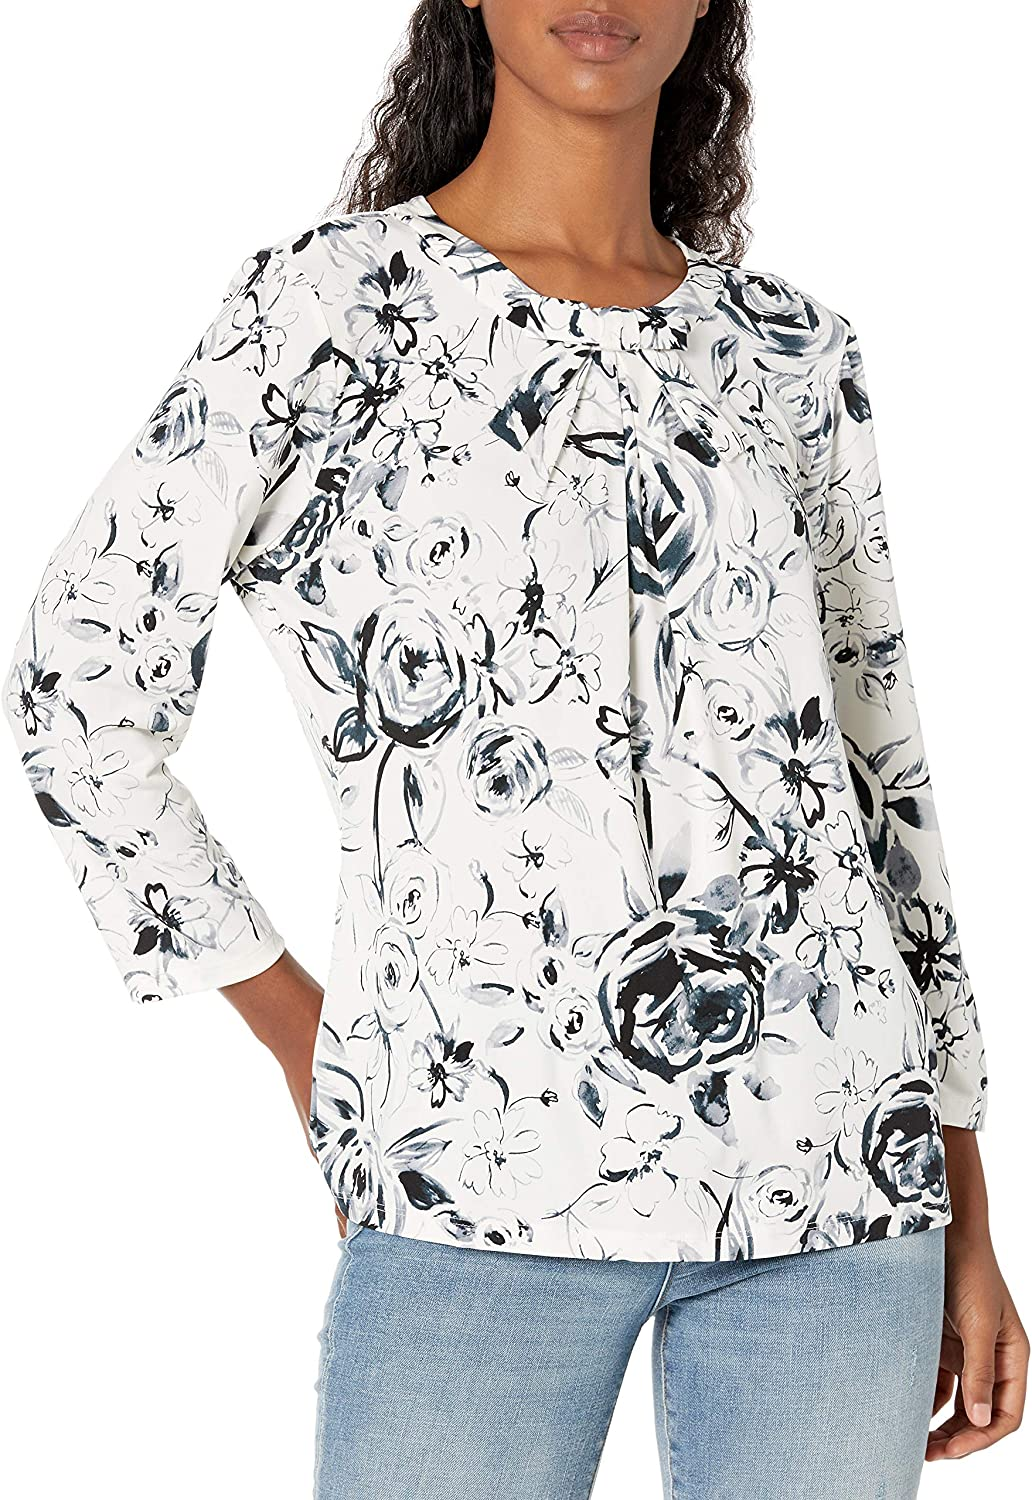 Karl Lagerfeld Paris Women's Sleeve free shipping Blouse Max 54% OFF Long